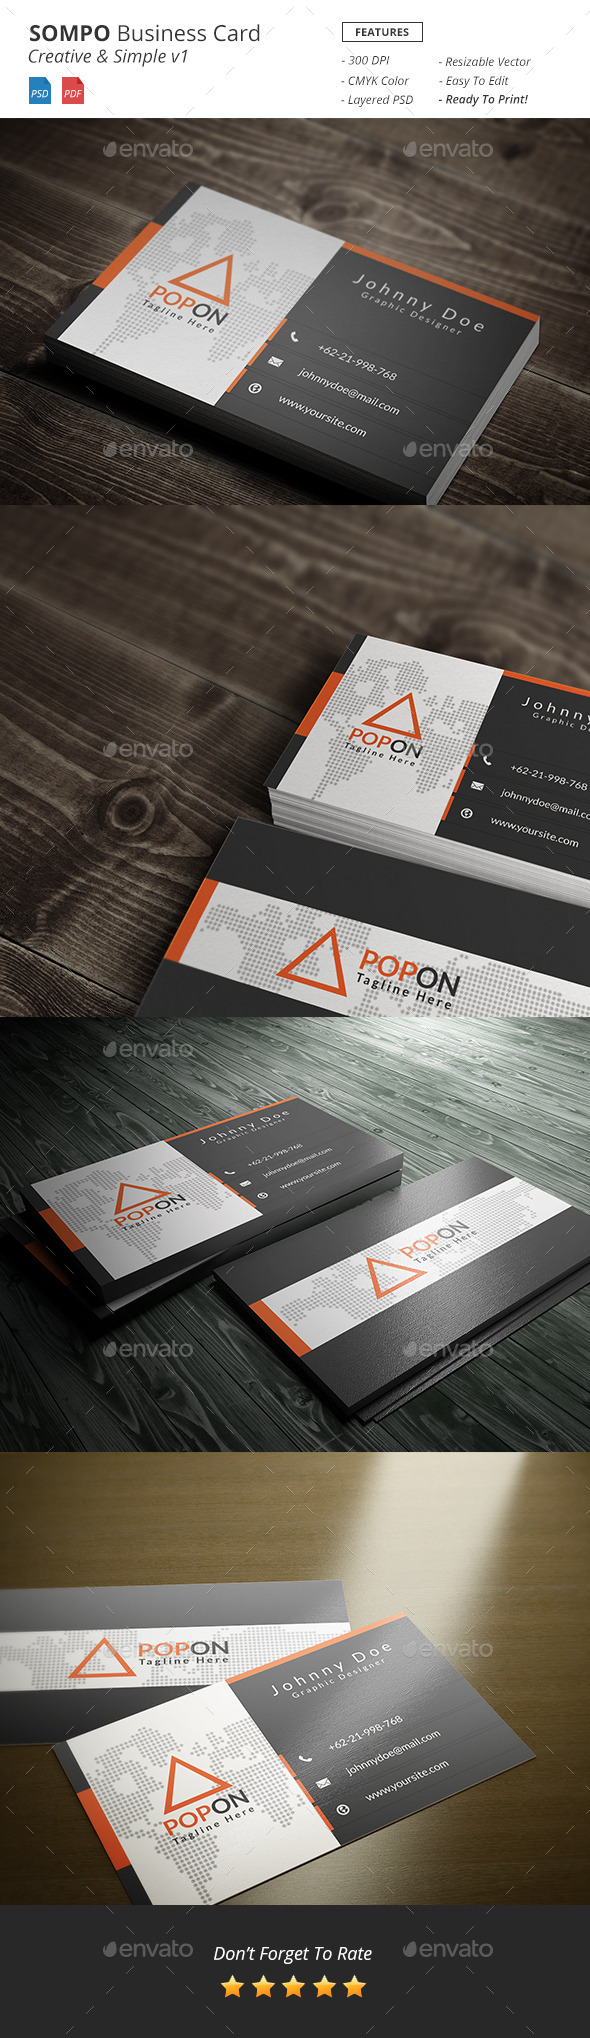 Sompo - Creative Bussiness Card Template v1 - Creative Business Cards